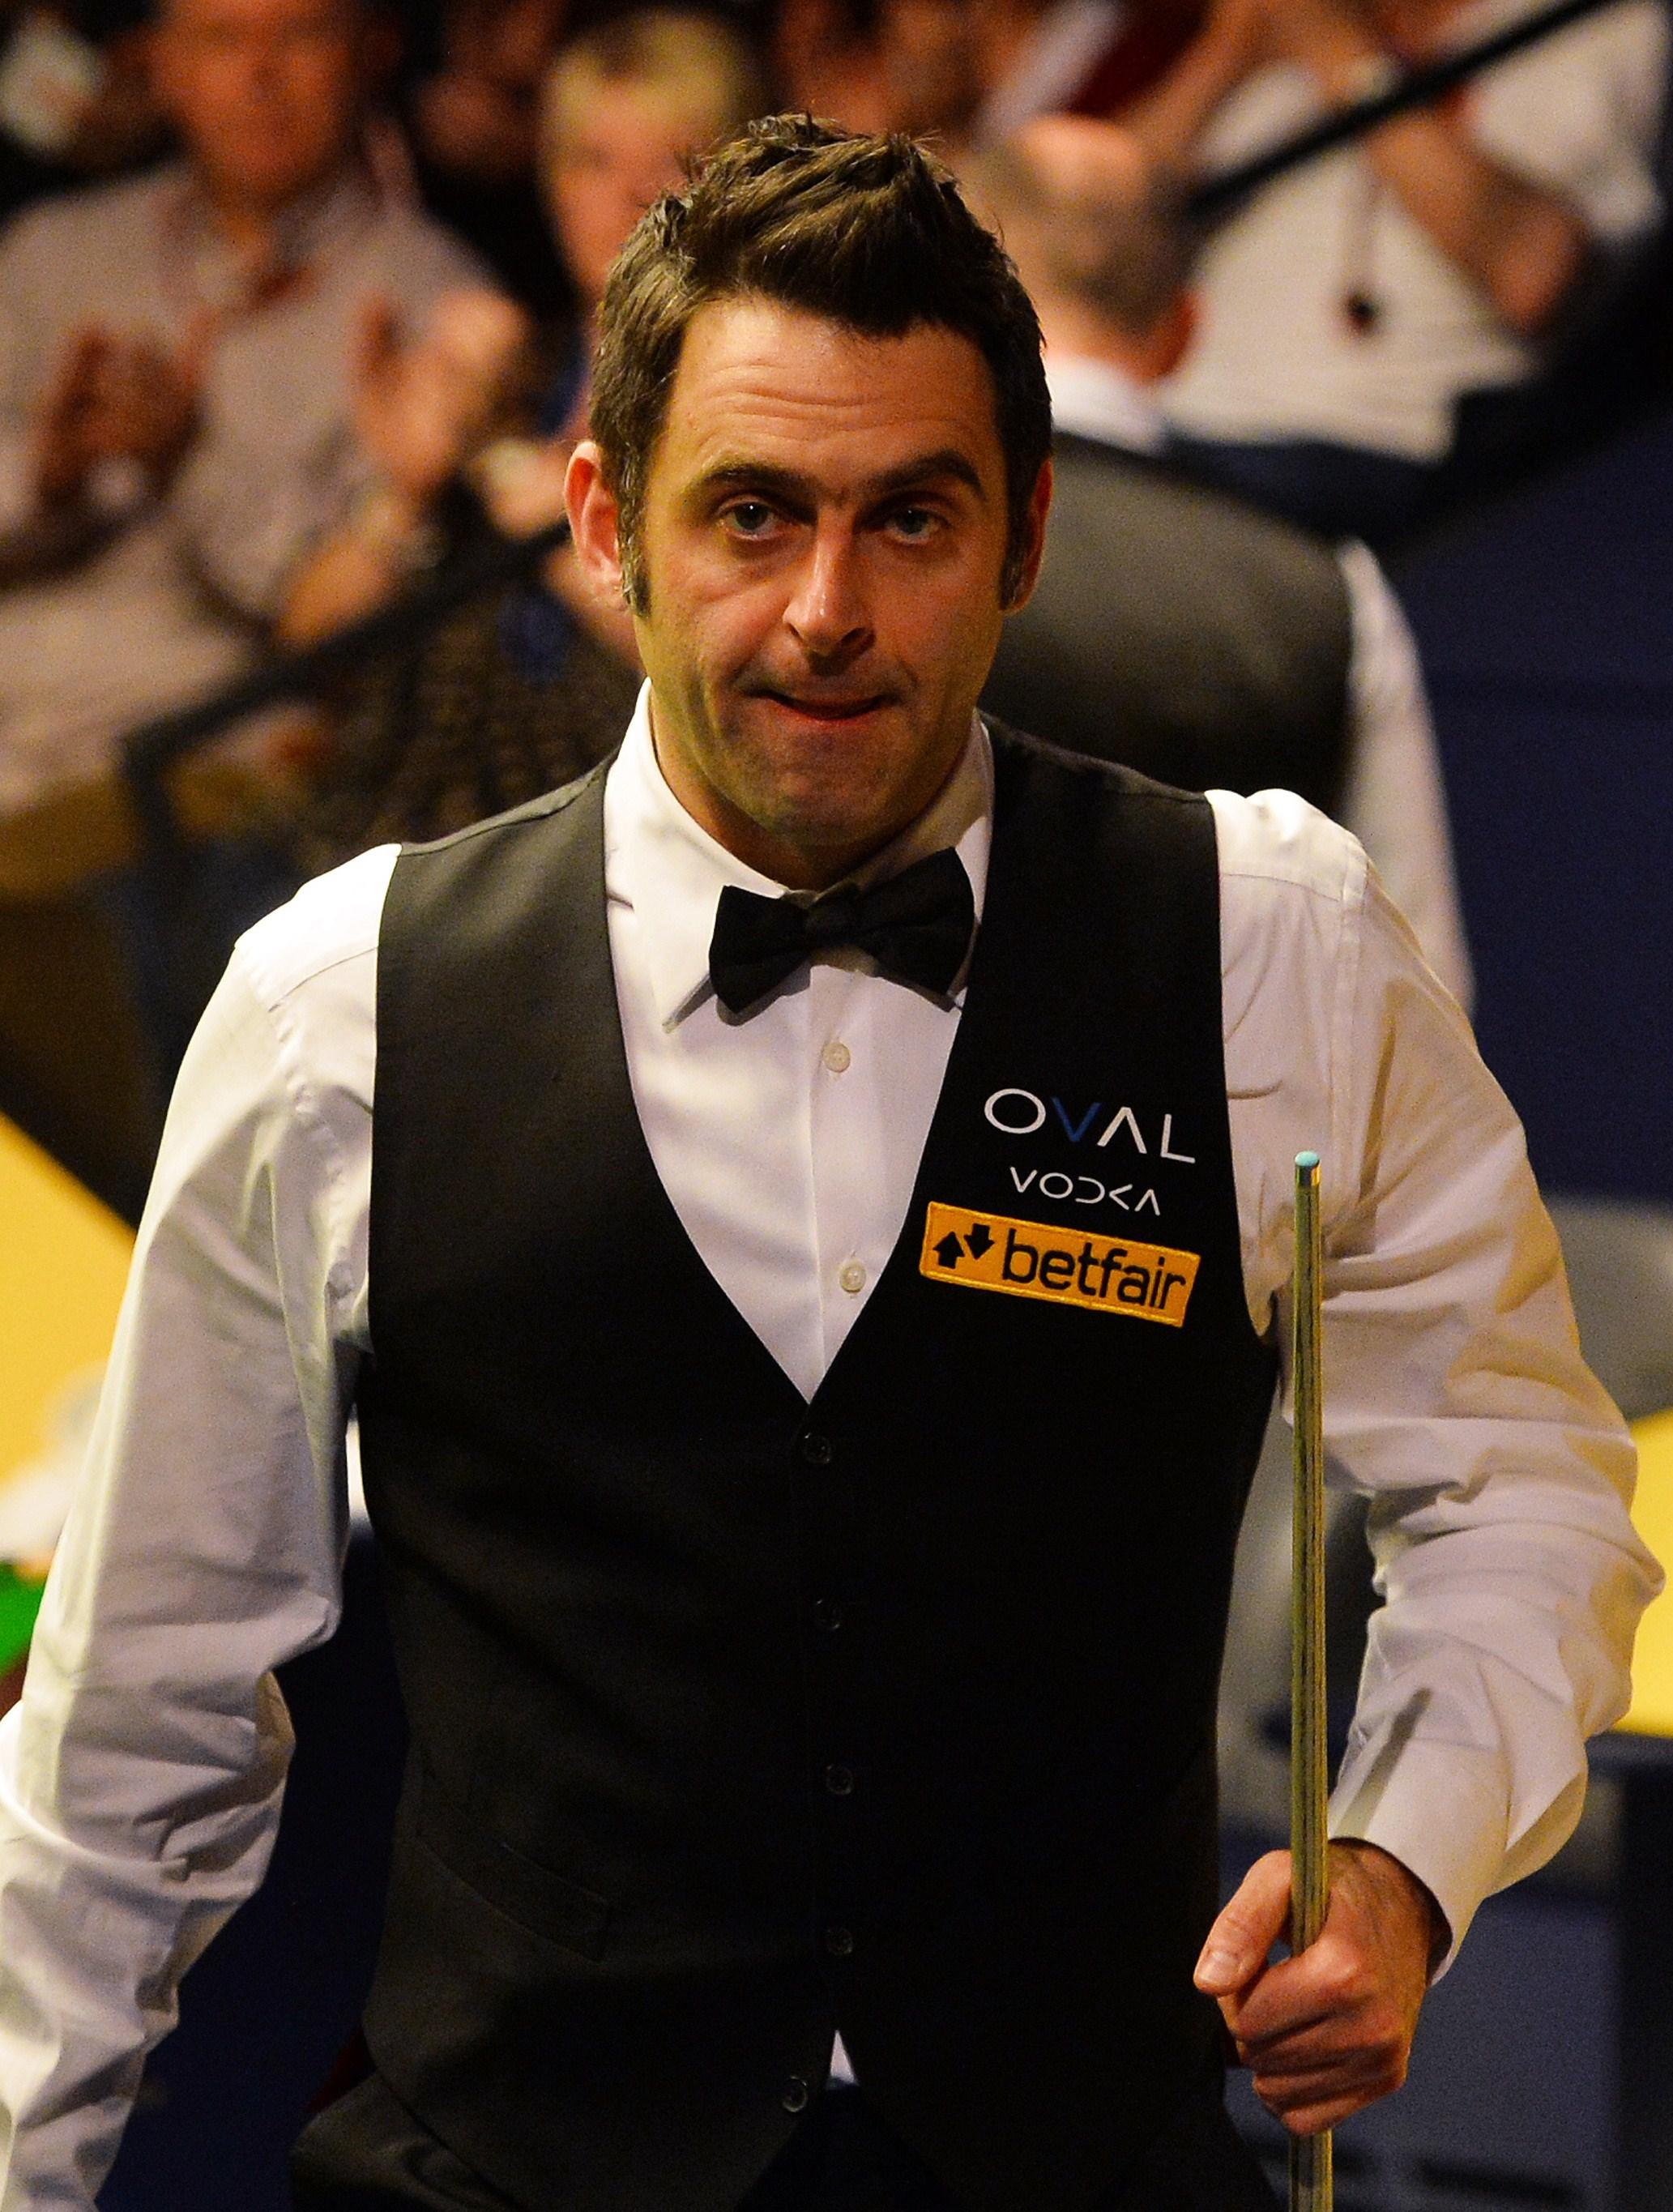 Ronnie O'Sullivan is not the only player to criticise the choice